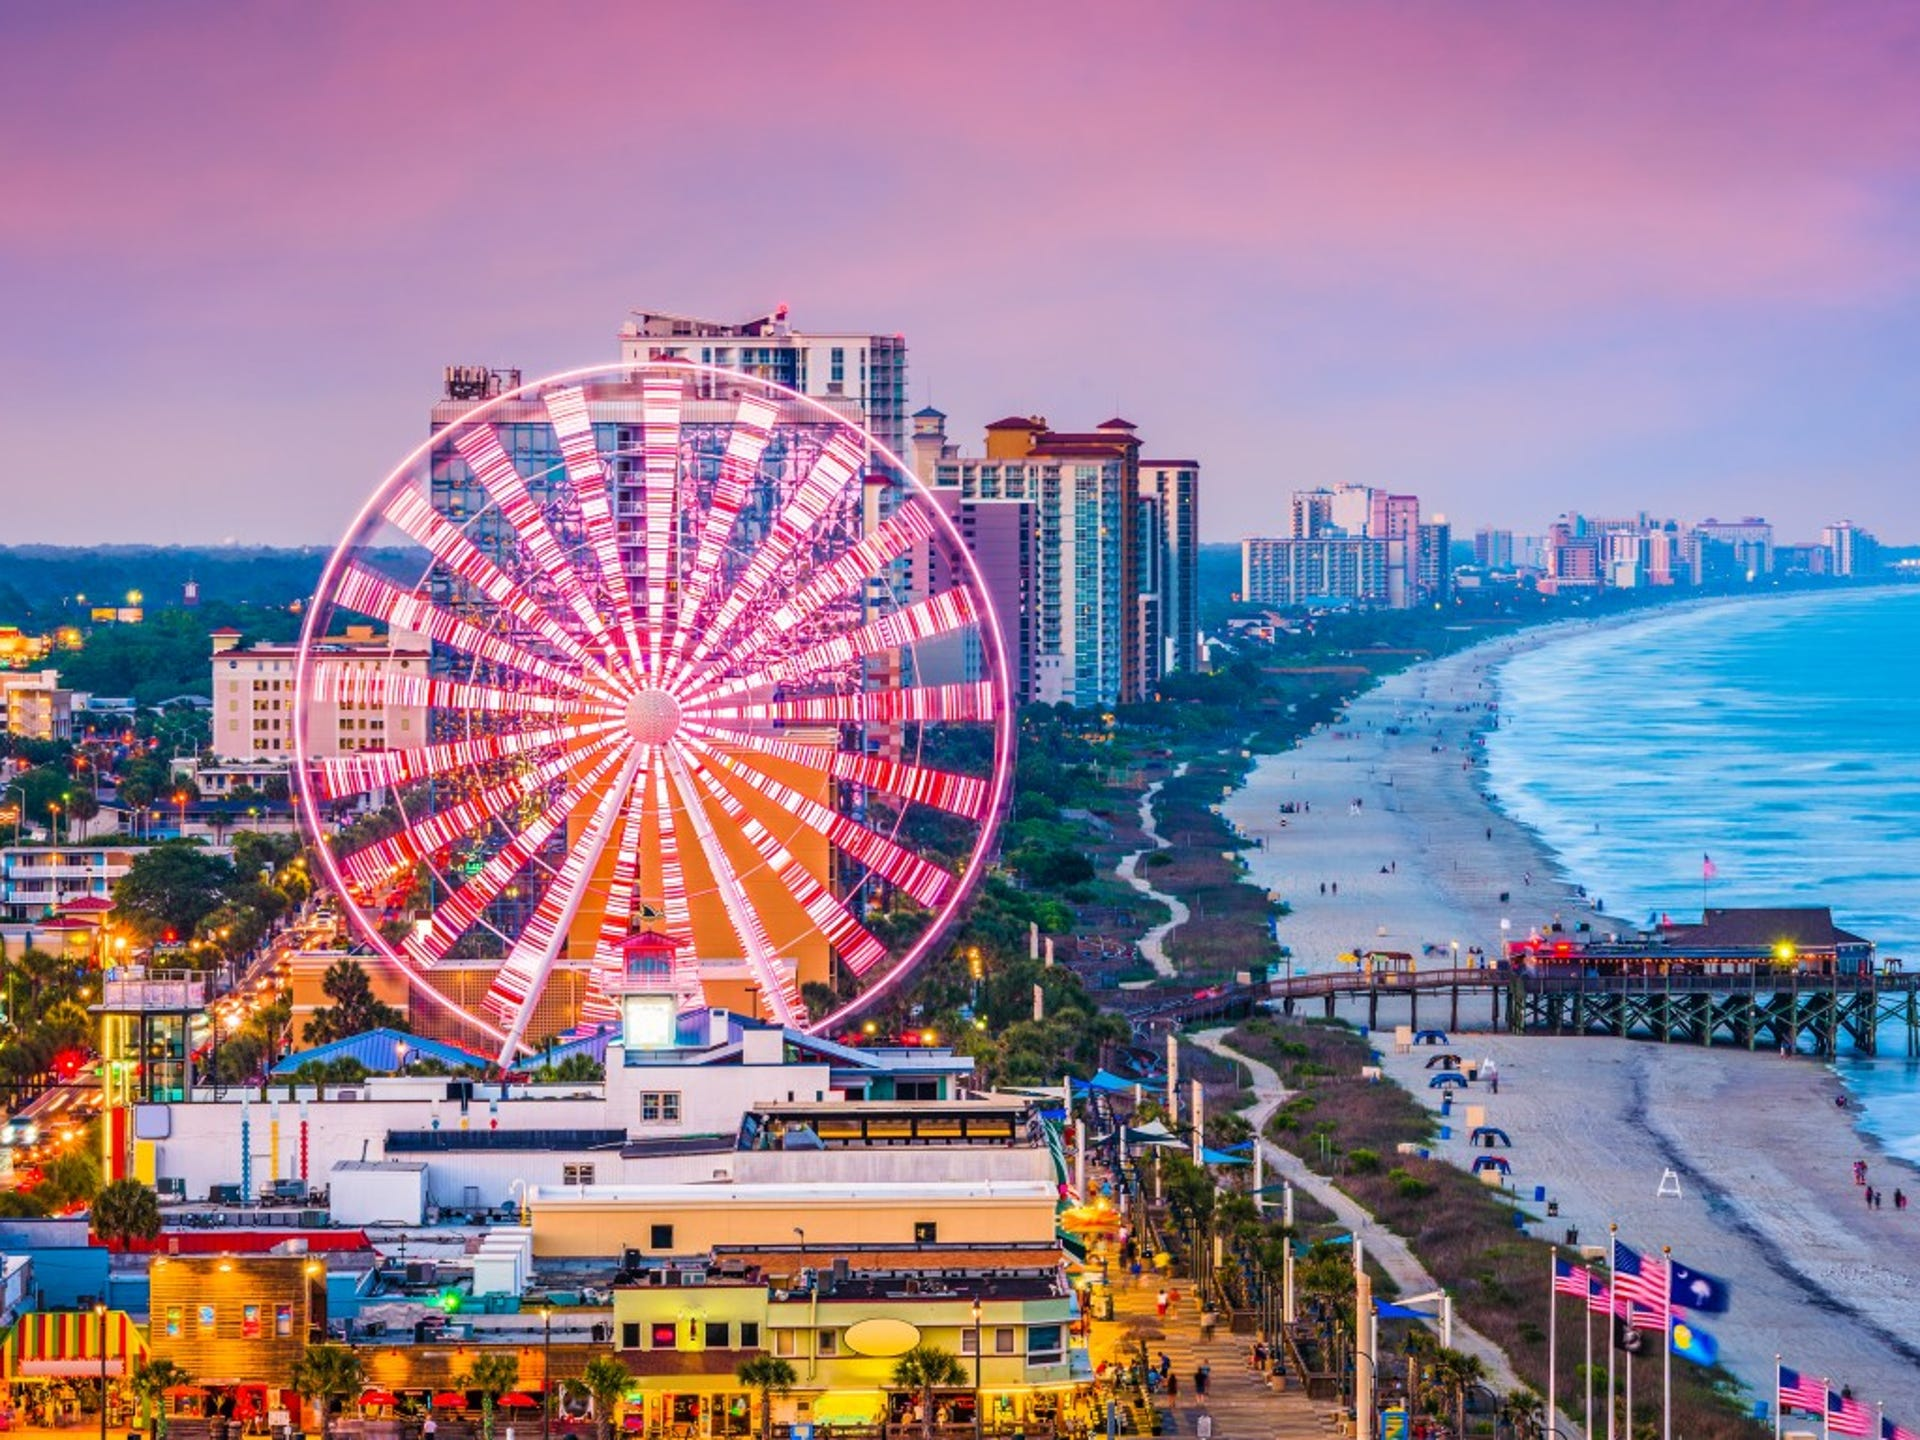 13. Myrtle Beach, SC     • Total properties at risk of hurricane damage:  131,083     • Reconstruction cost value of properties:  $24.4 billion     • Metro area population:  480,891     • Recent severe hurricane:  Hugo (1989) With its 60 miles of coastline, South Carolina's Myrtle Beach is a well-known vacation destination. Its location, however, also makes it vulnerable to dangerous, ocean-borne weather events. Recent hurricanes that have hit the Myrtle Beach area include Matthew in 2016, Charley in 2004, and Floyd in 1999.